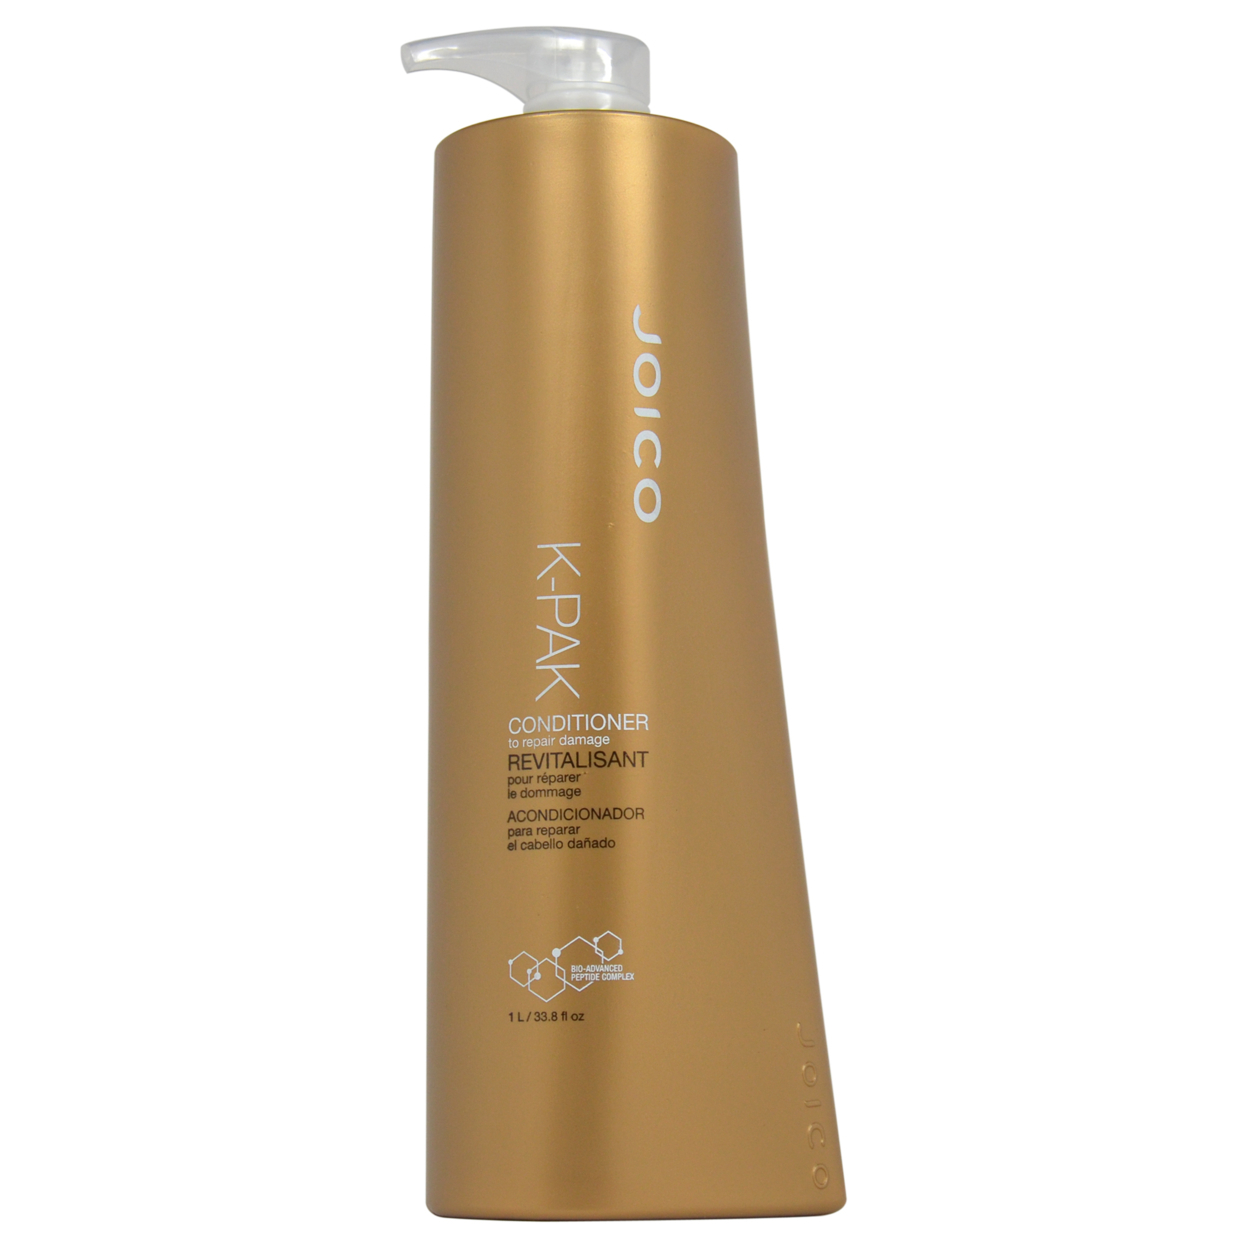 K-Pak Reconstruct Conditioner by Joico for Unisex - 33.8 oz Conditioner 55bf9d79a2771c7c648b4eb0